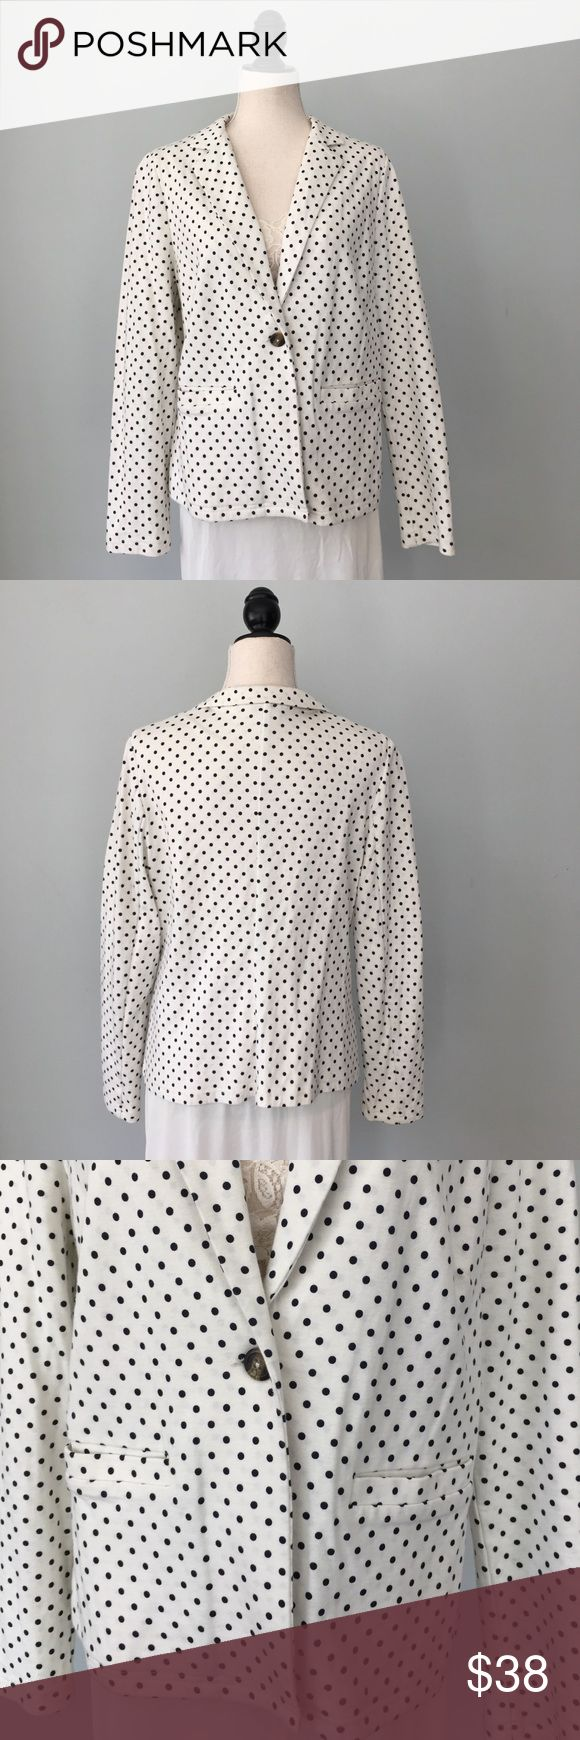 Boden cotton Polka Dot Blazer Excellent condition double knit, Boden ivory Blazer with black Polka dots, 99% cotton, size 18UK, 14 US. Hip pockets and 1 button front closure. Boden Jackets & Coats Blazers